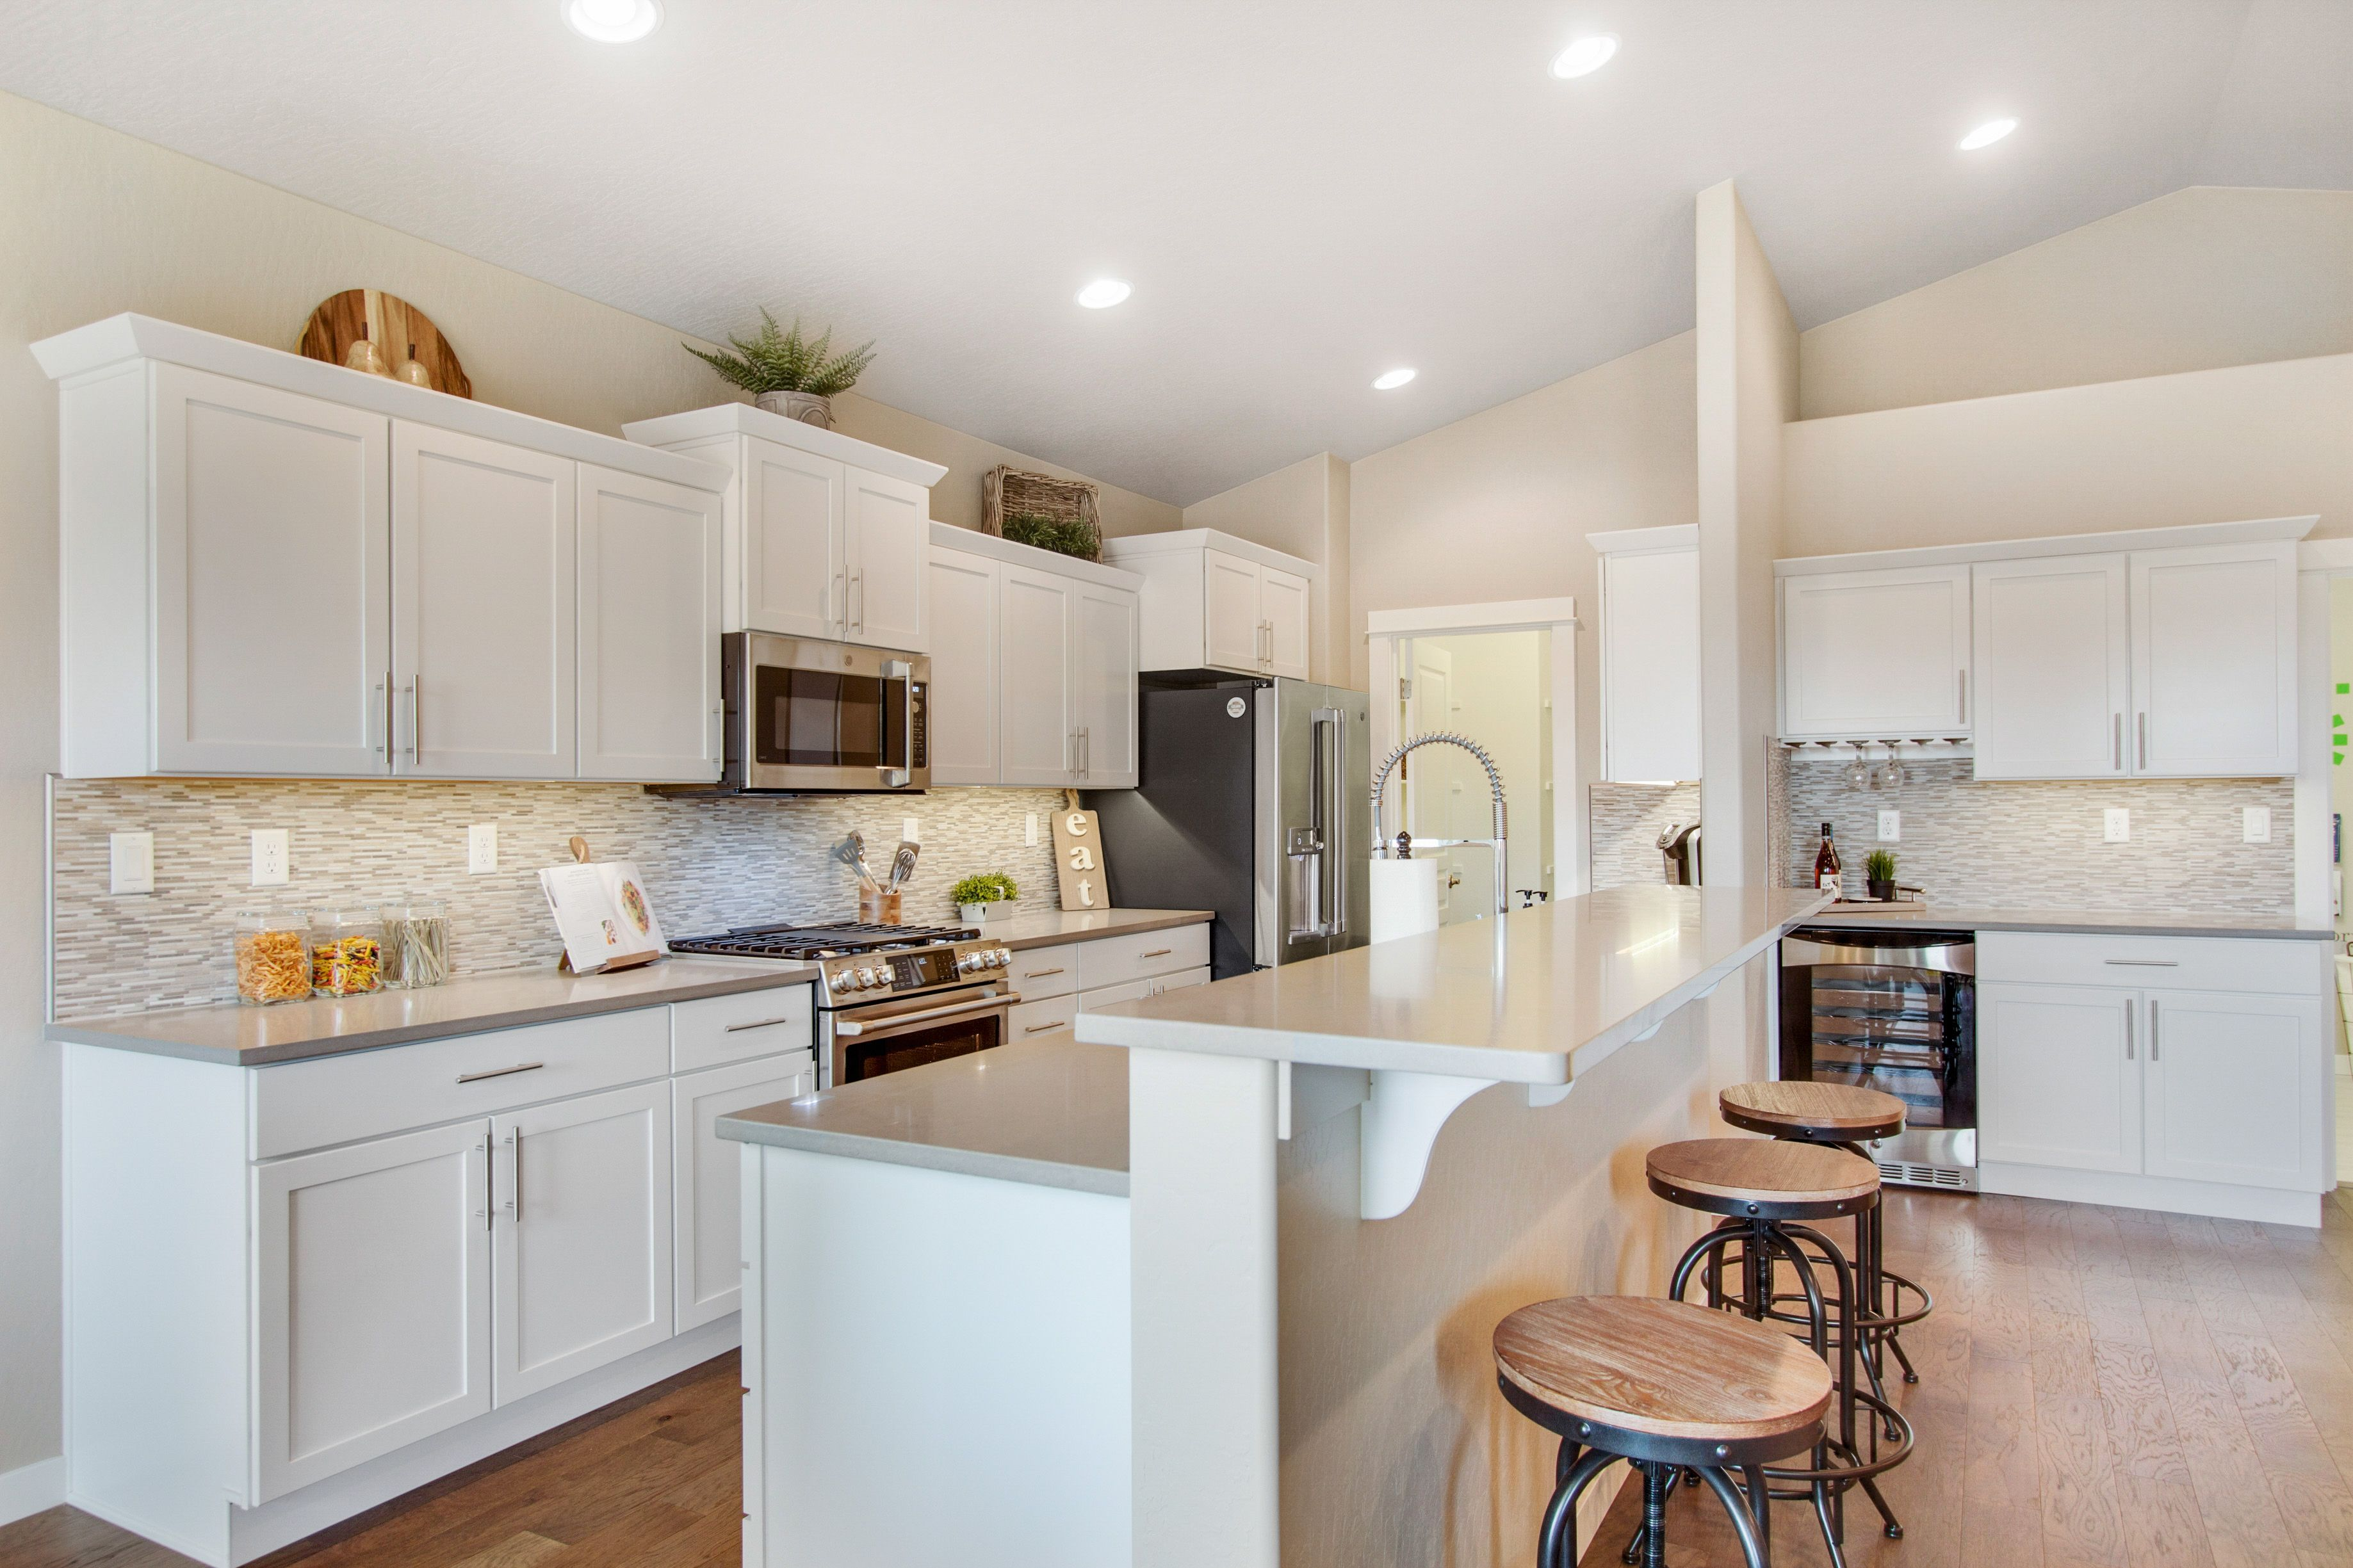 White Cabinets Are Hot Right Now This Kitchen Is Open Light And Fresh We Hope It Will Inspire You Find Hayden Homes New Home Builders New Home Communities